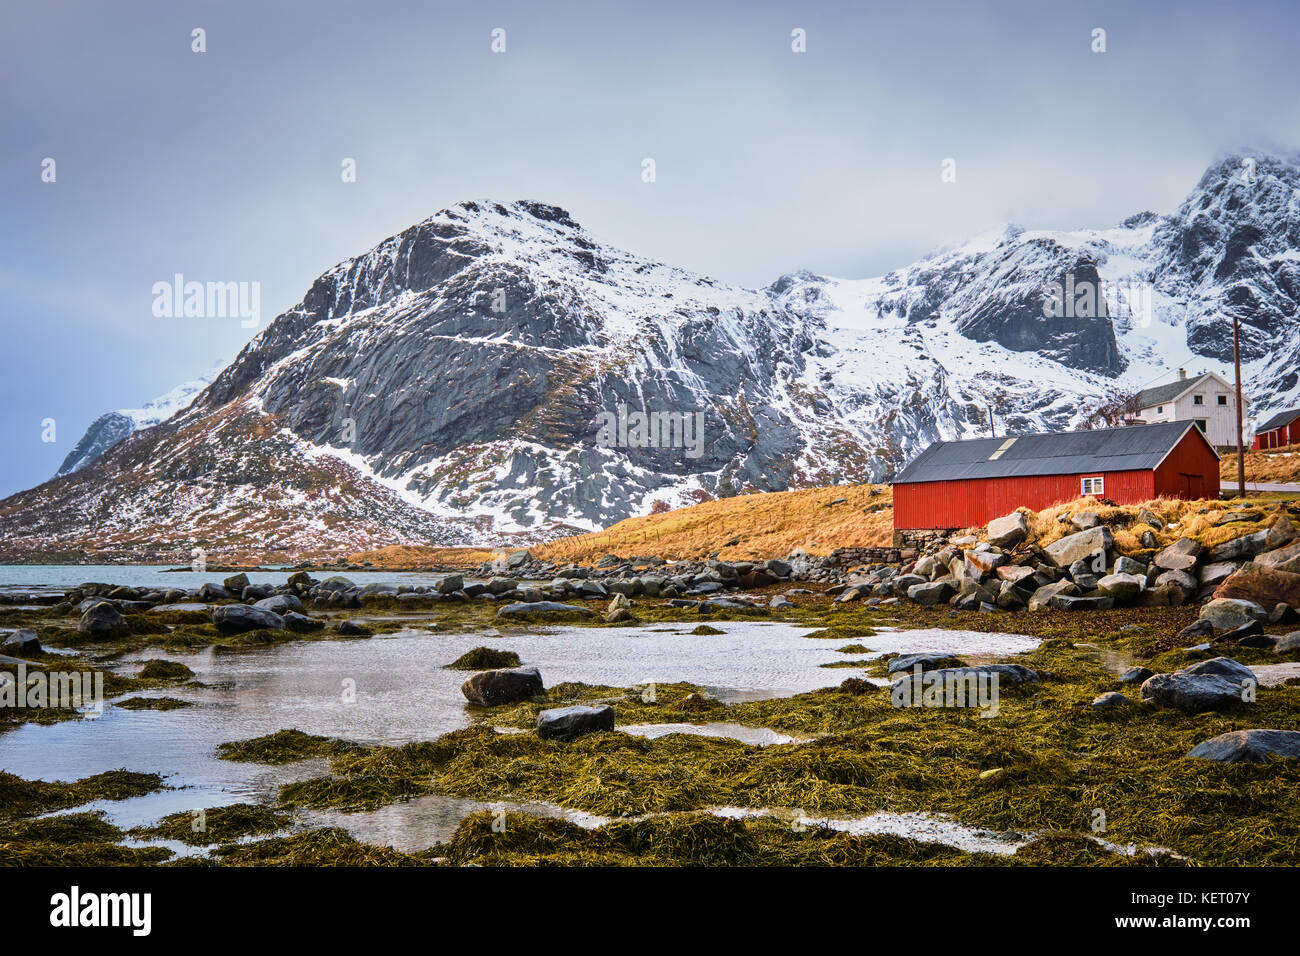 Red rorbu house and fjord in Norway - Stock Image